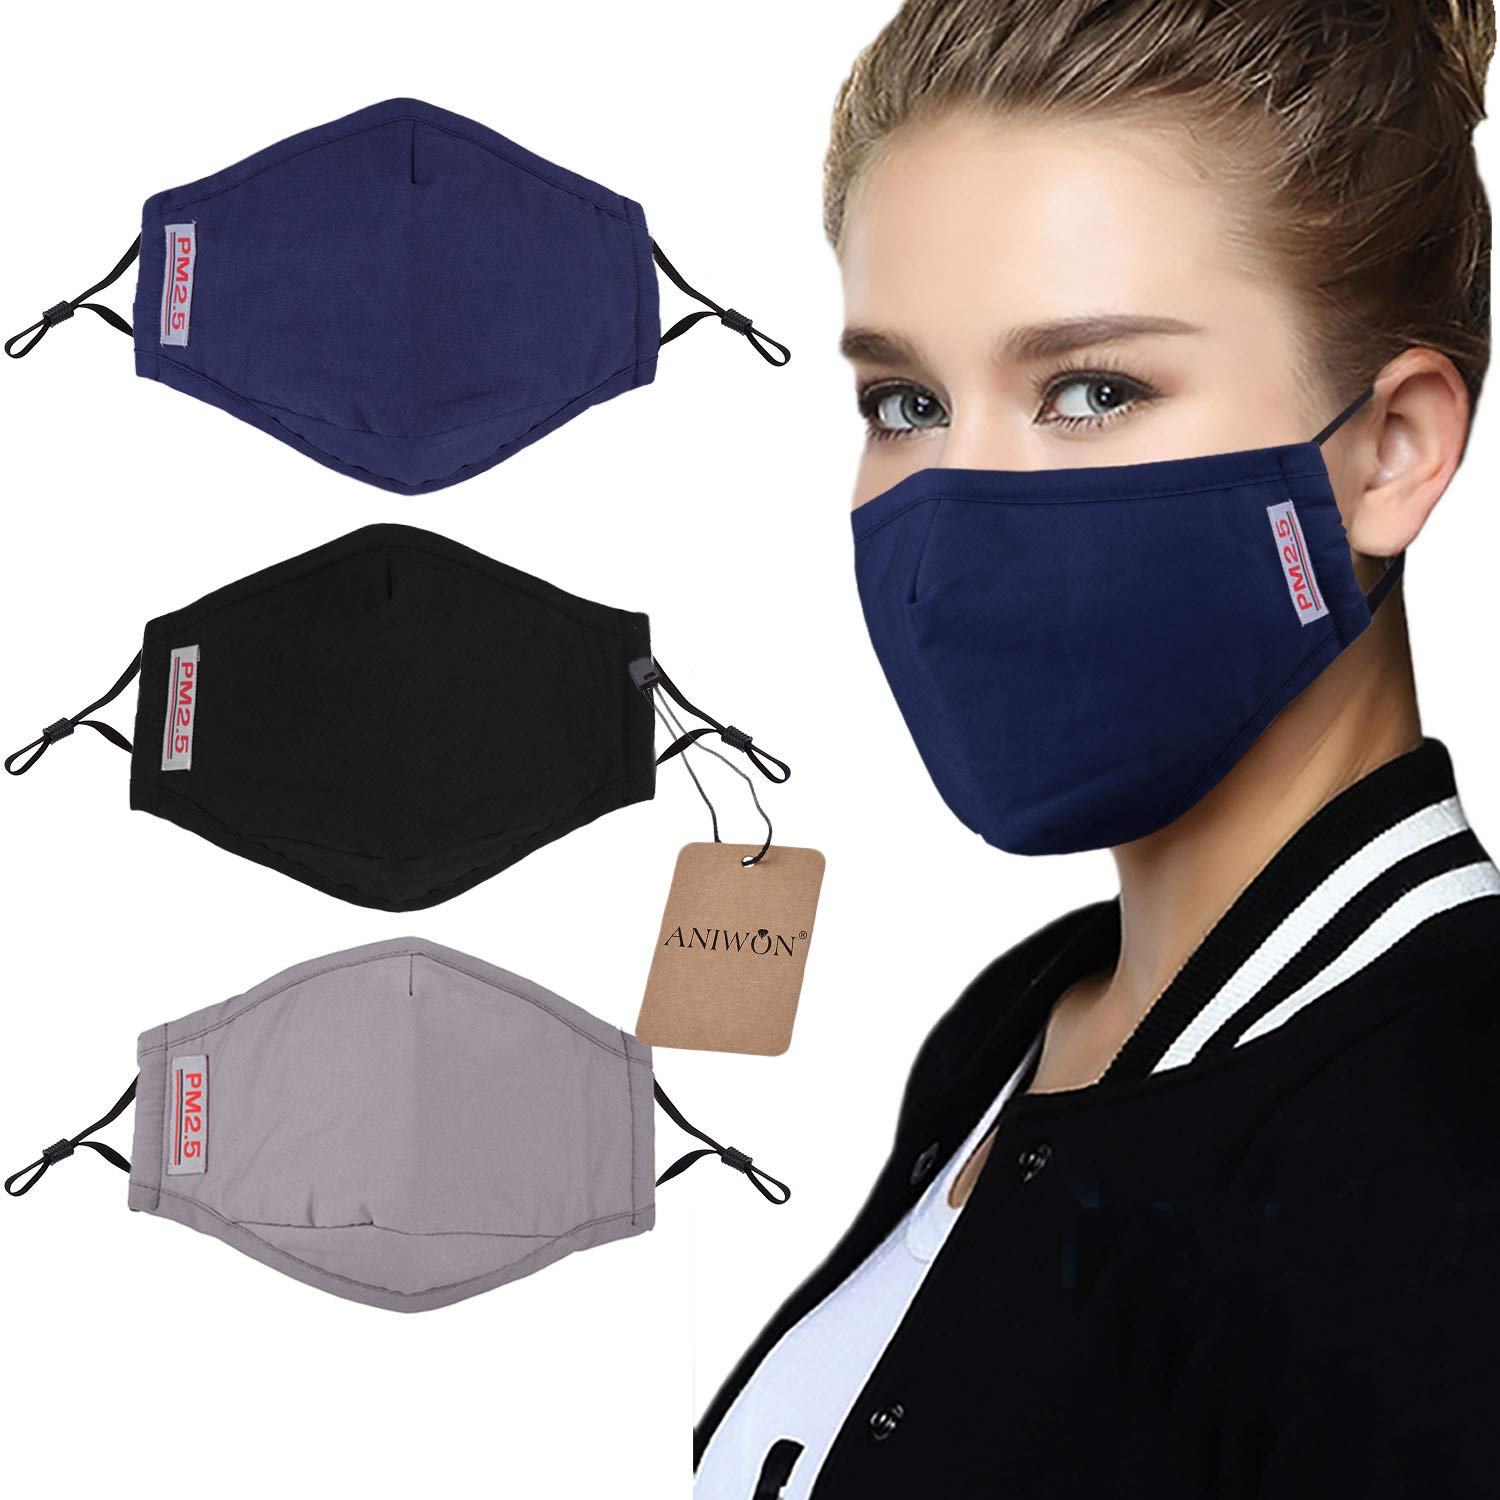 Dust Mask,Aniwon 3 Pack Anti Dust Pollution Mask with 6 Pcs Activated Carbon Filter Insert Washable Cotton Mouth Mask with Adjustable Straps by Aniwon